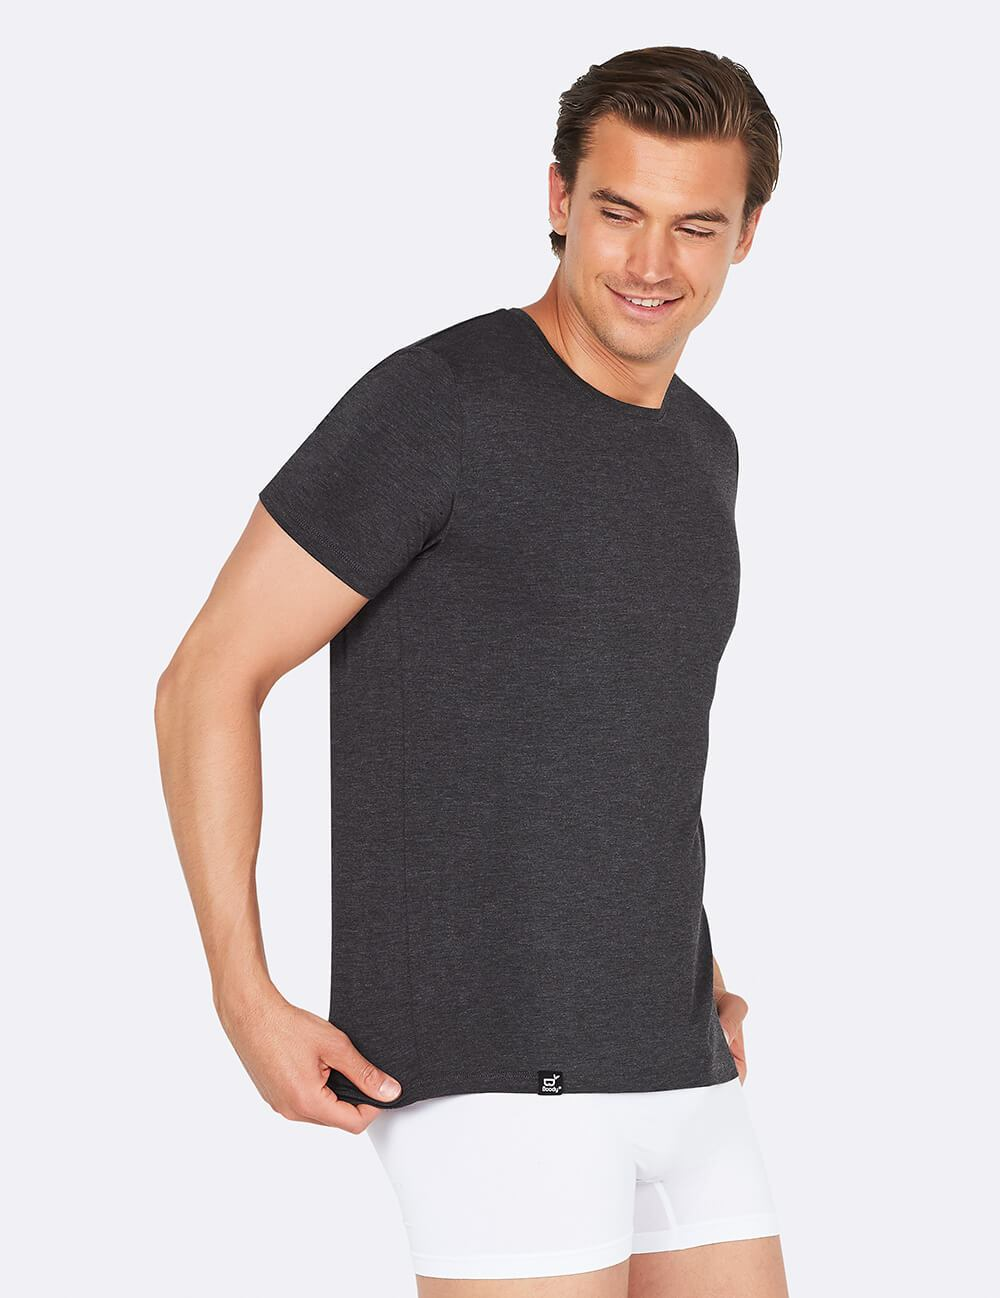 Boody Men's Crew Neck T-shirt Ethical Sustainable tees